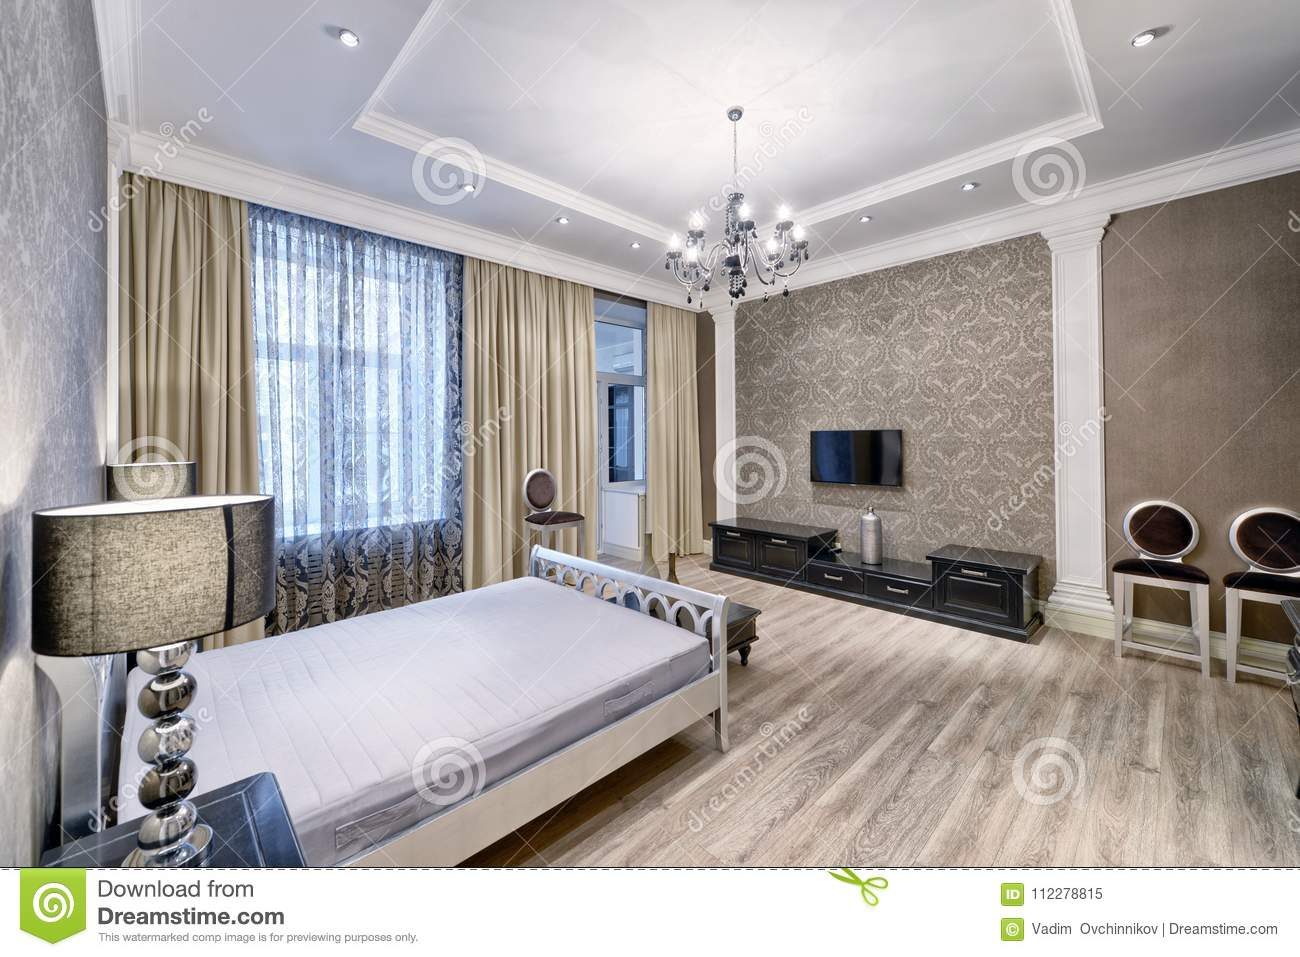 Interior Design Beautiful Bedroom In Luxury Home Stock Image Image Of Dreams Curtains 112278815